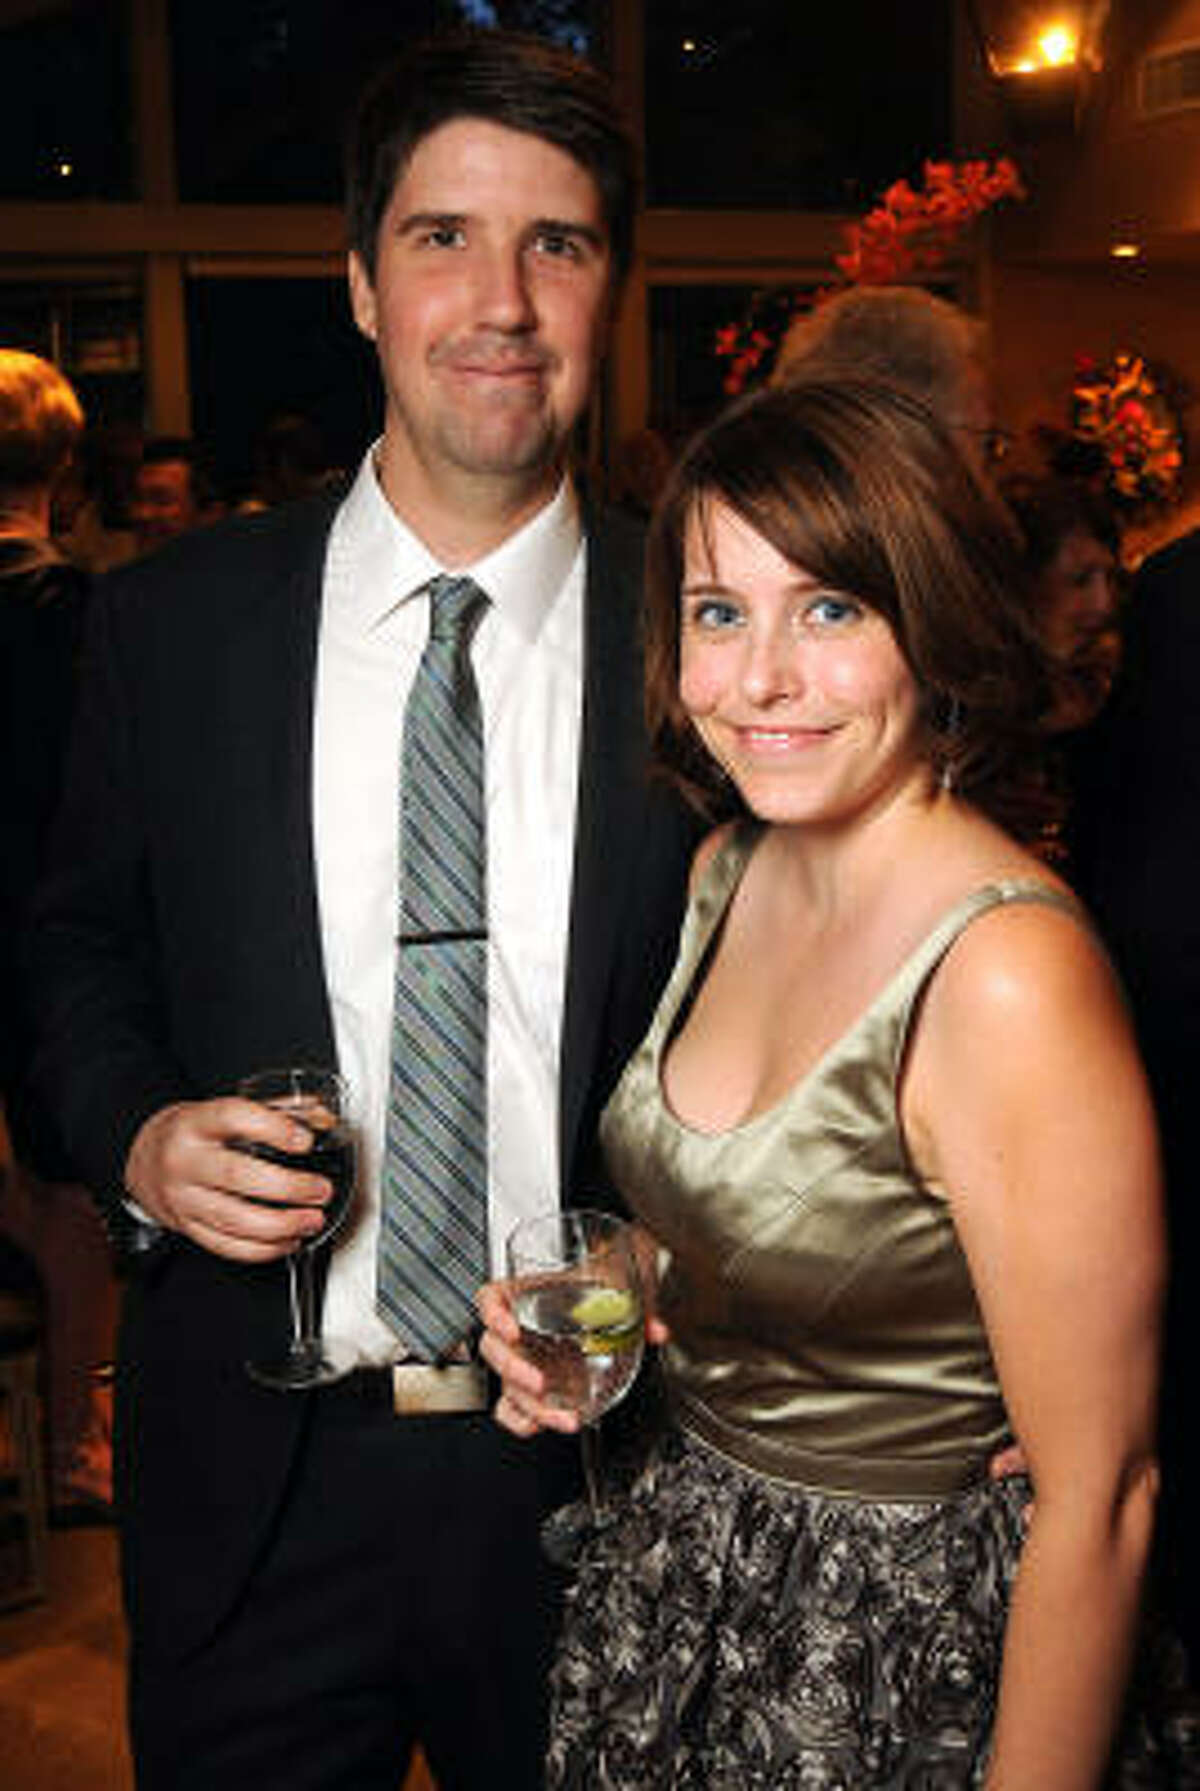 Ian Stansel and Sarah Strickley